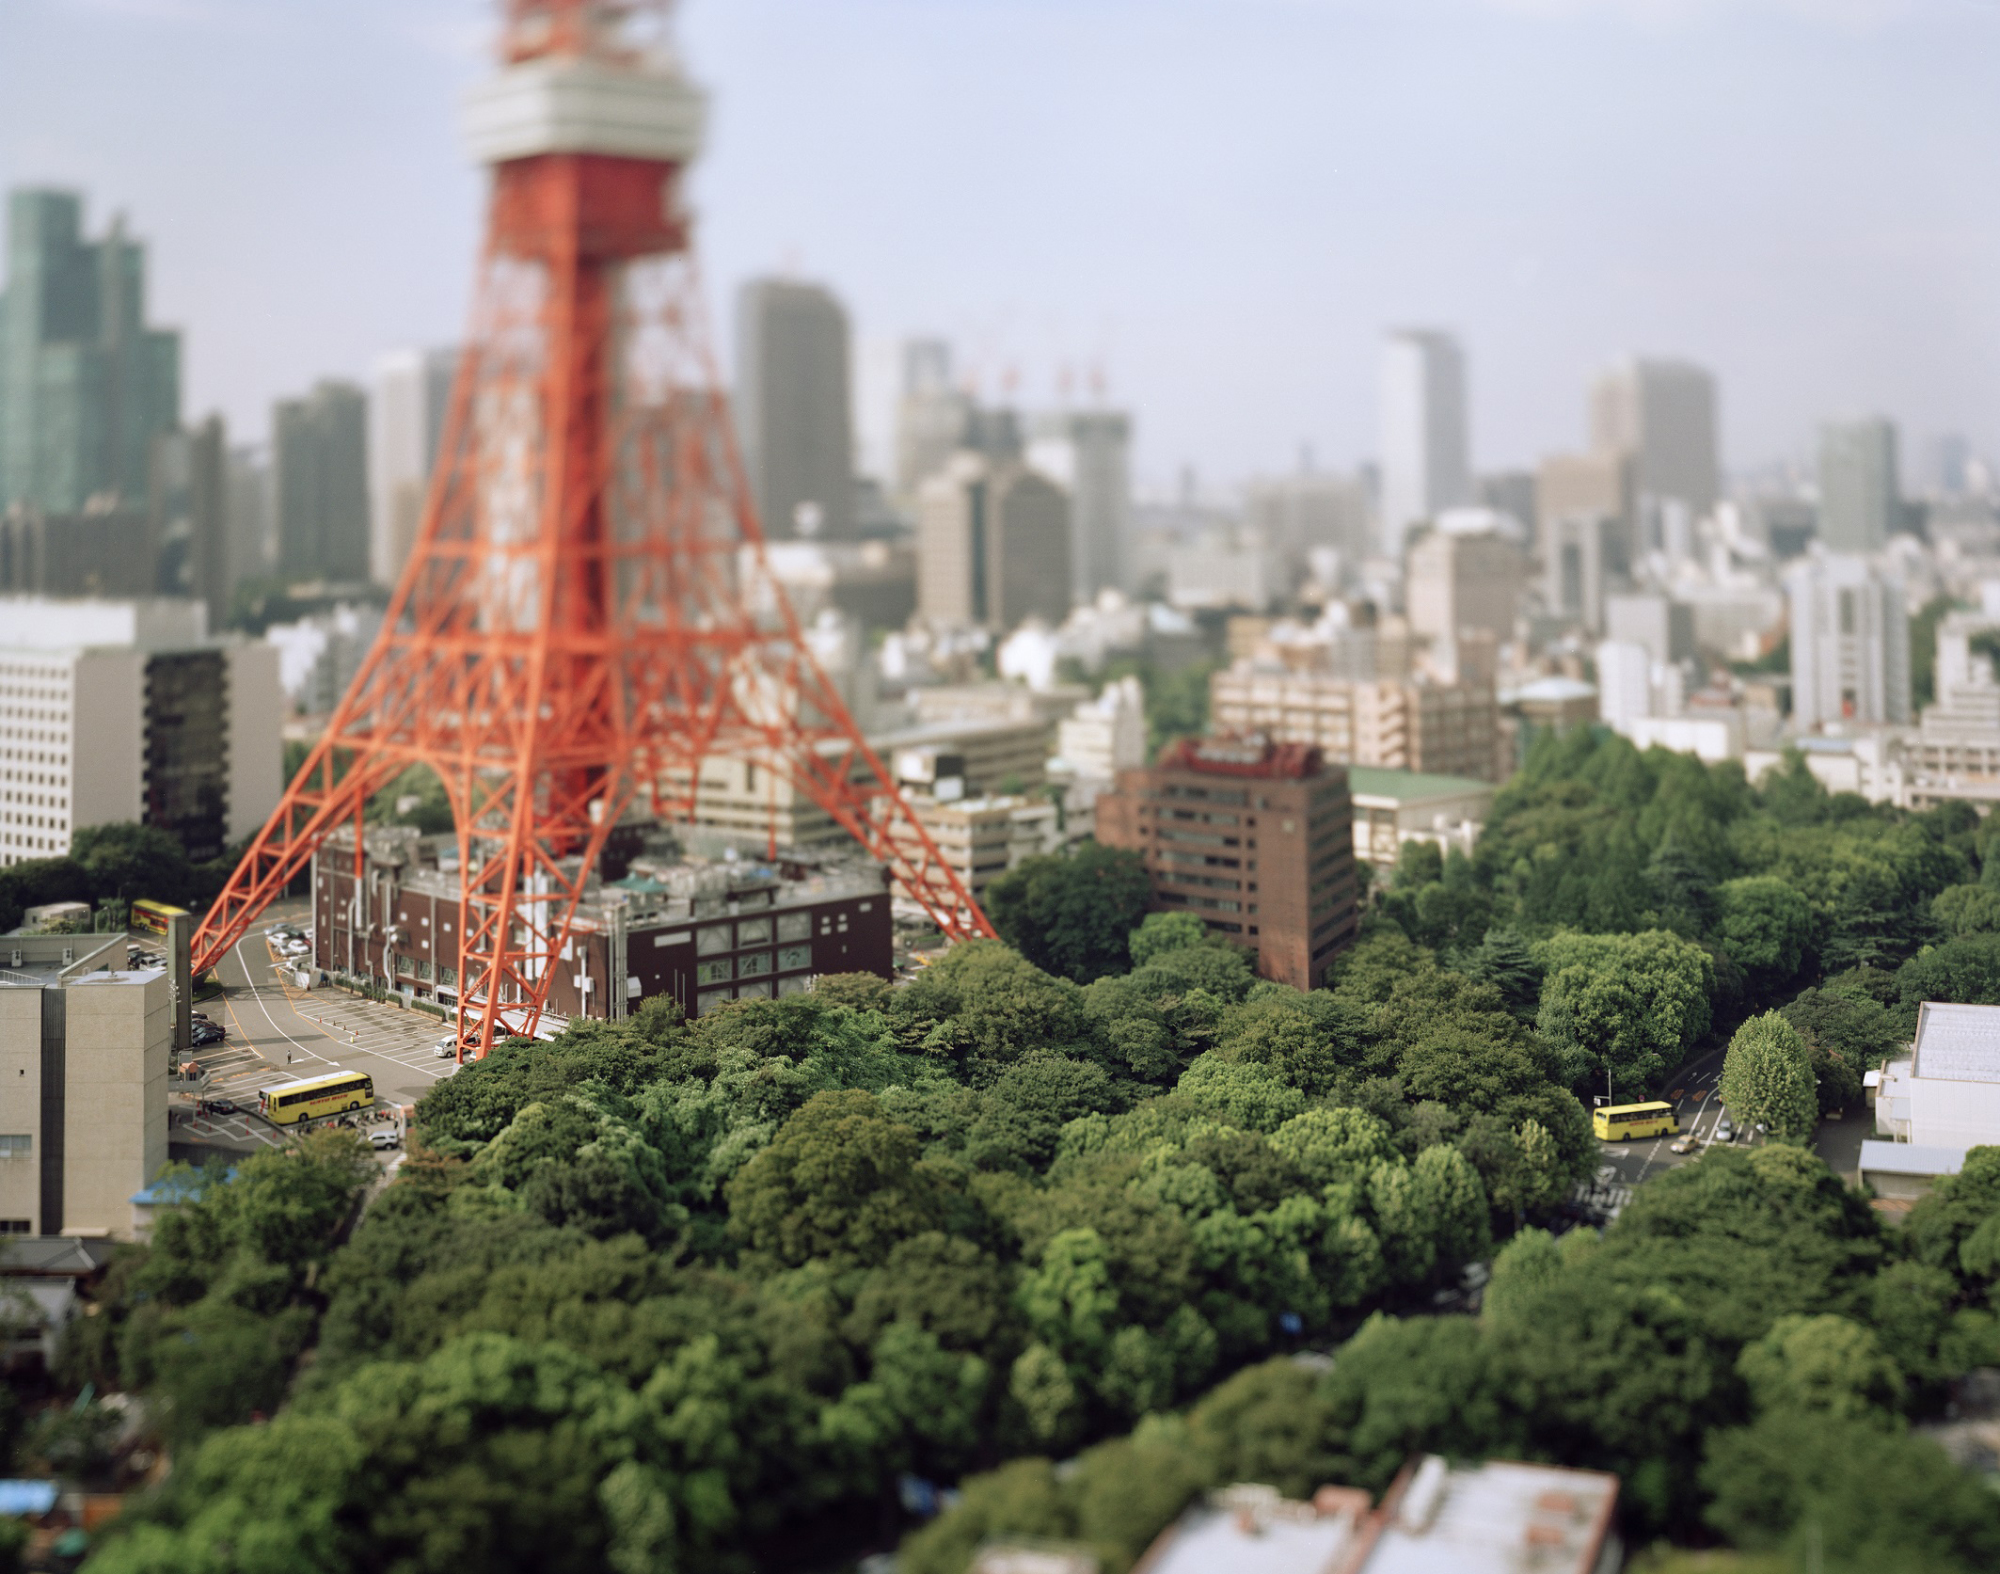 Naoki Honjo's 'Tokyo Tower, Tokyo, Japan' from 'Small Planet' (2005)